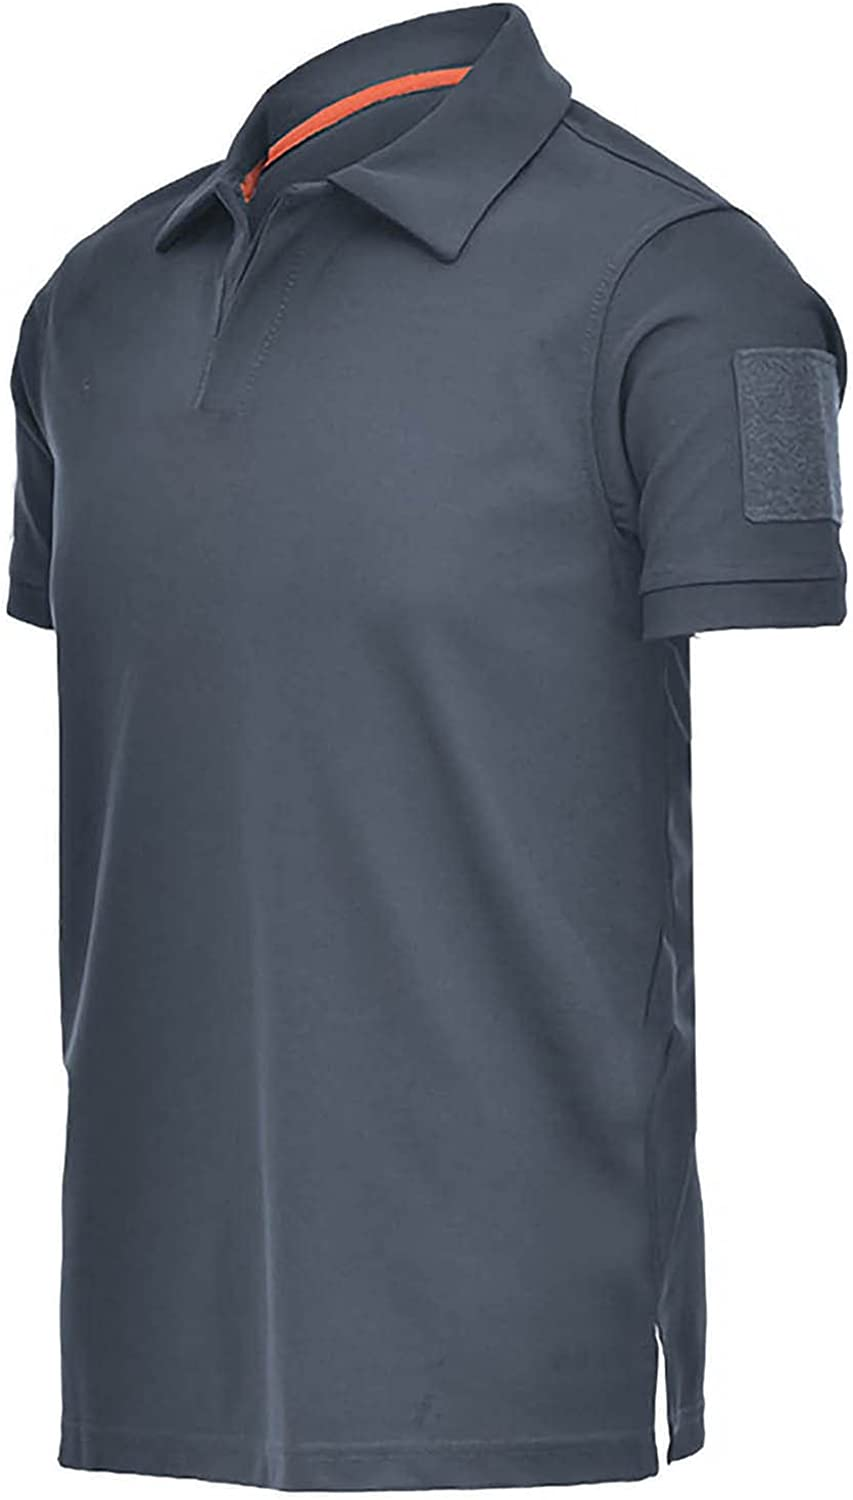 Mens Summer Casual V-Neck No Button Tee Shirts Classic Cut Polo Short Sleeve T Shirts Quick-Drying Tops for Men